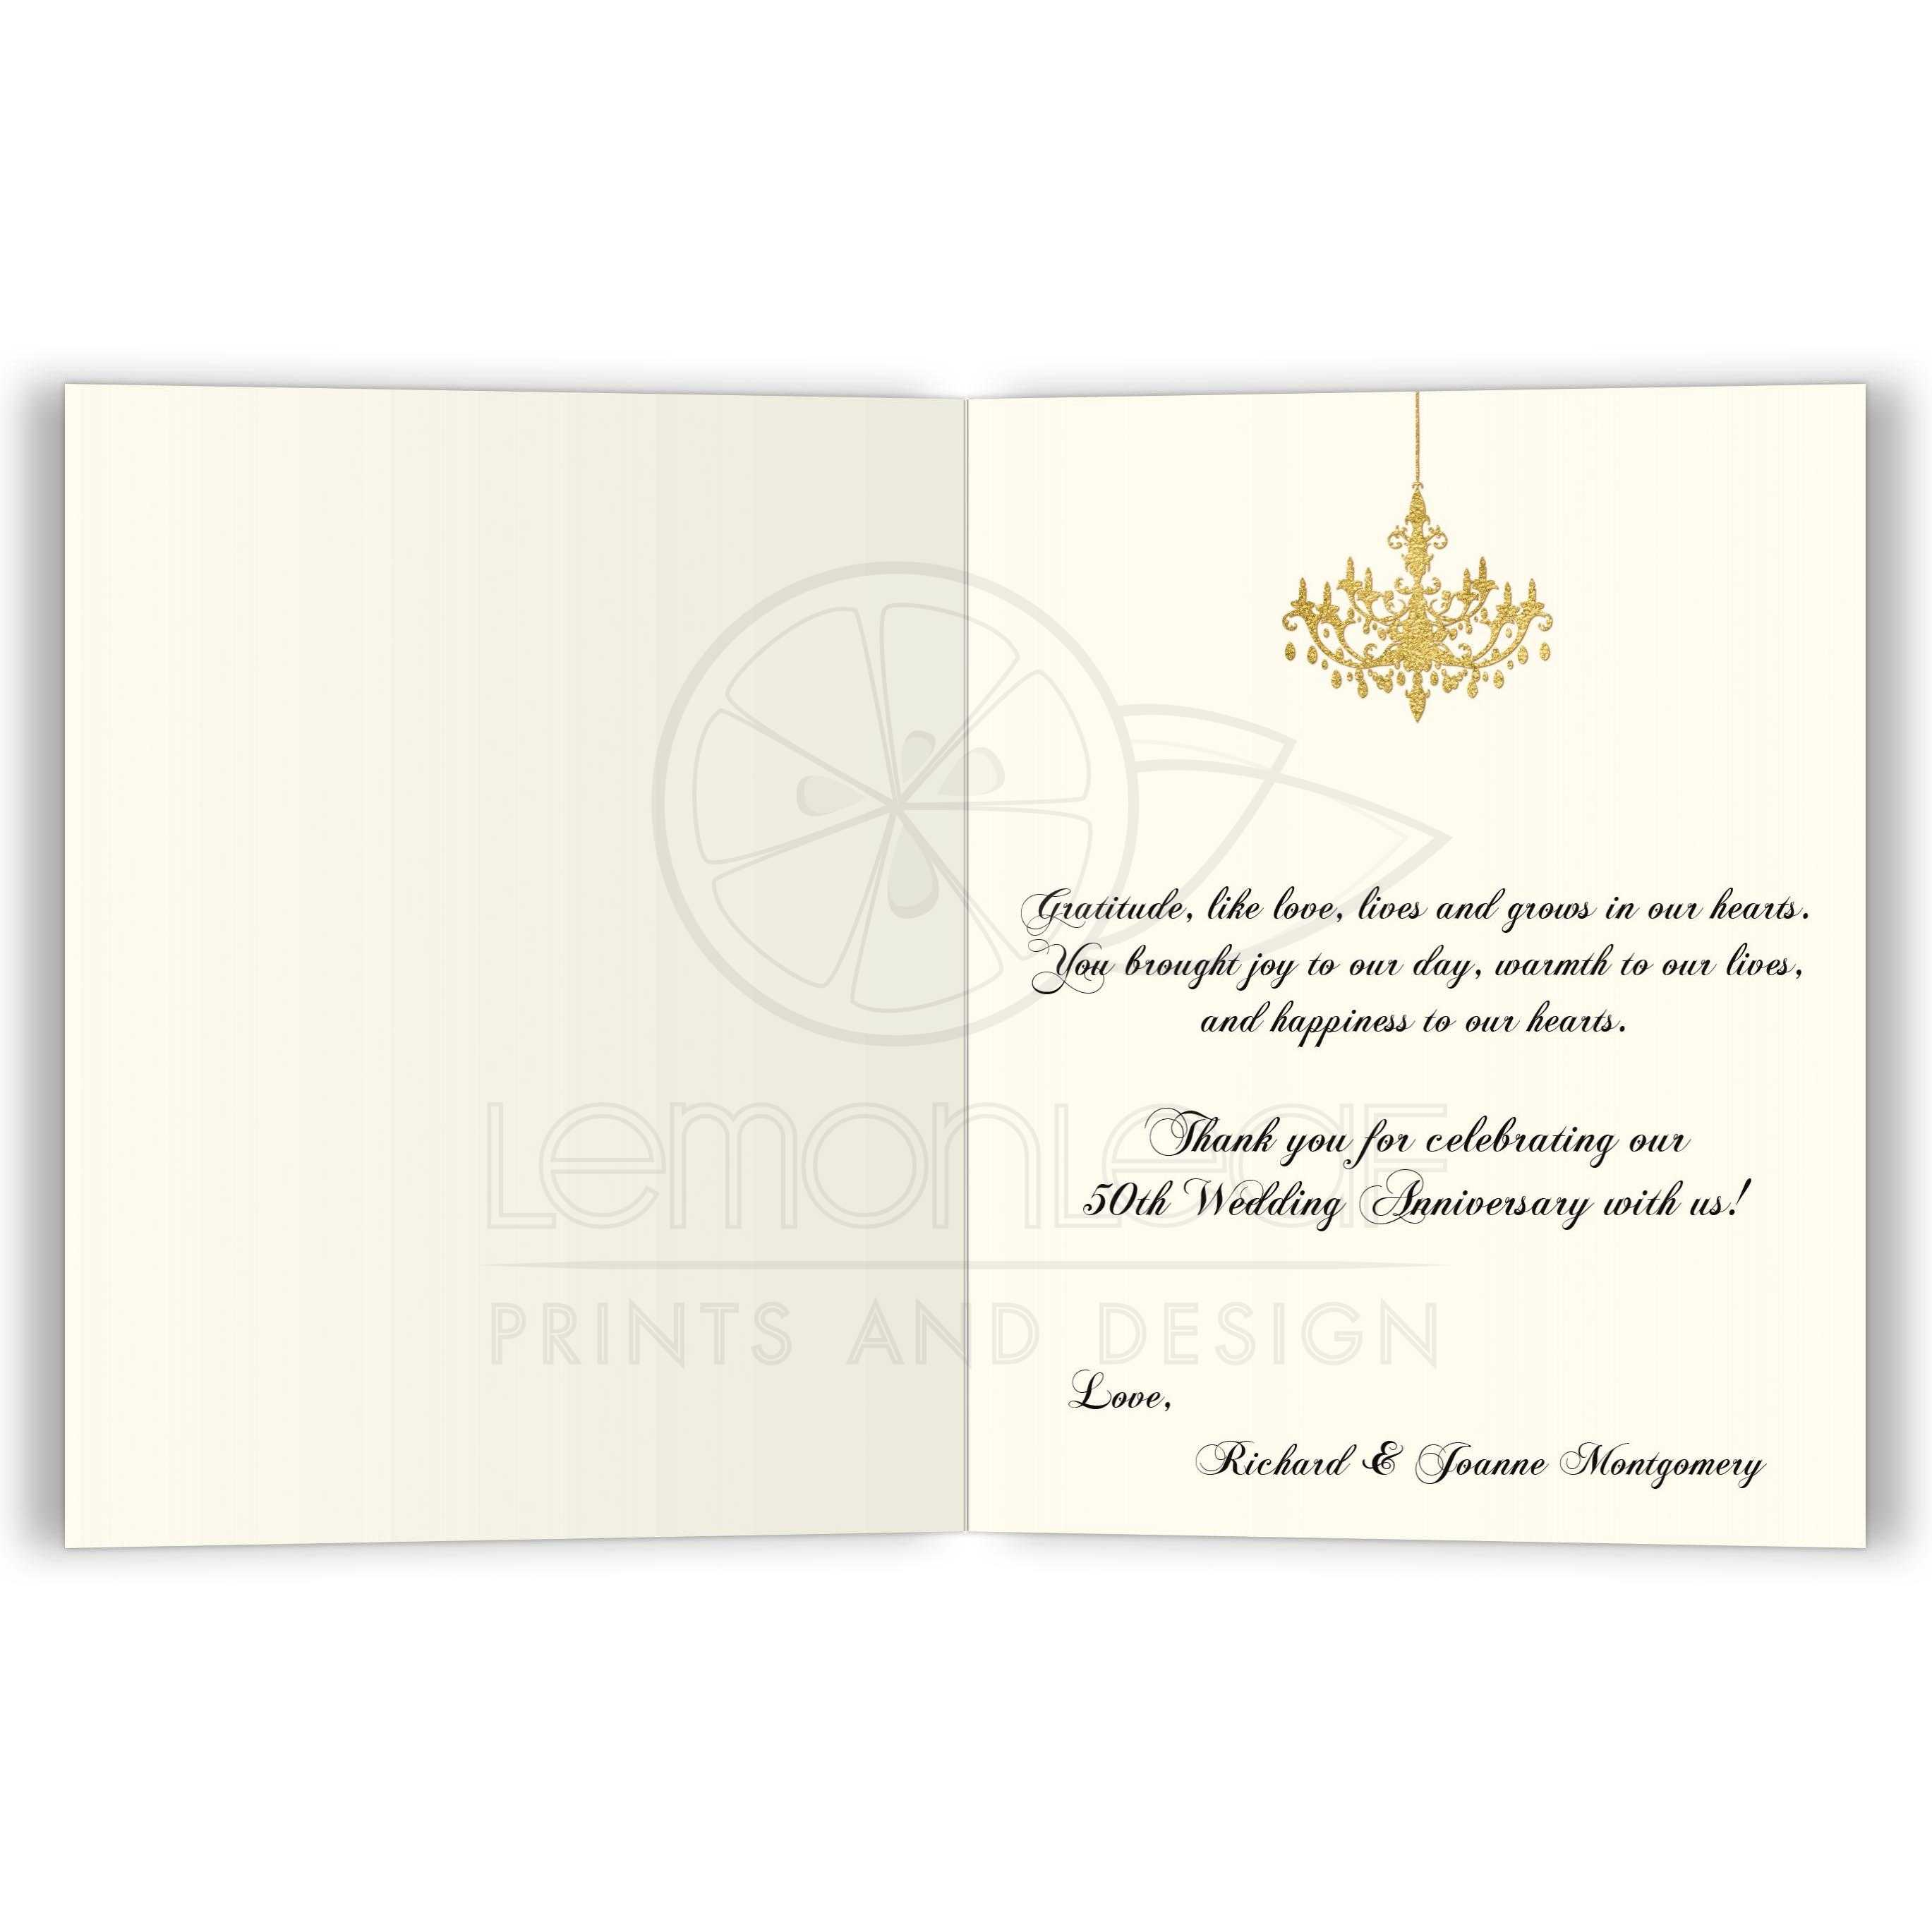 Personalized Thank You Card Faux Gold Foil Ivory Black Stripes